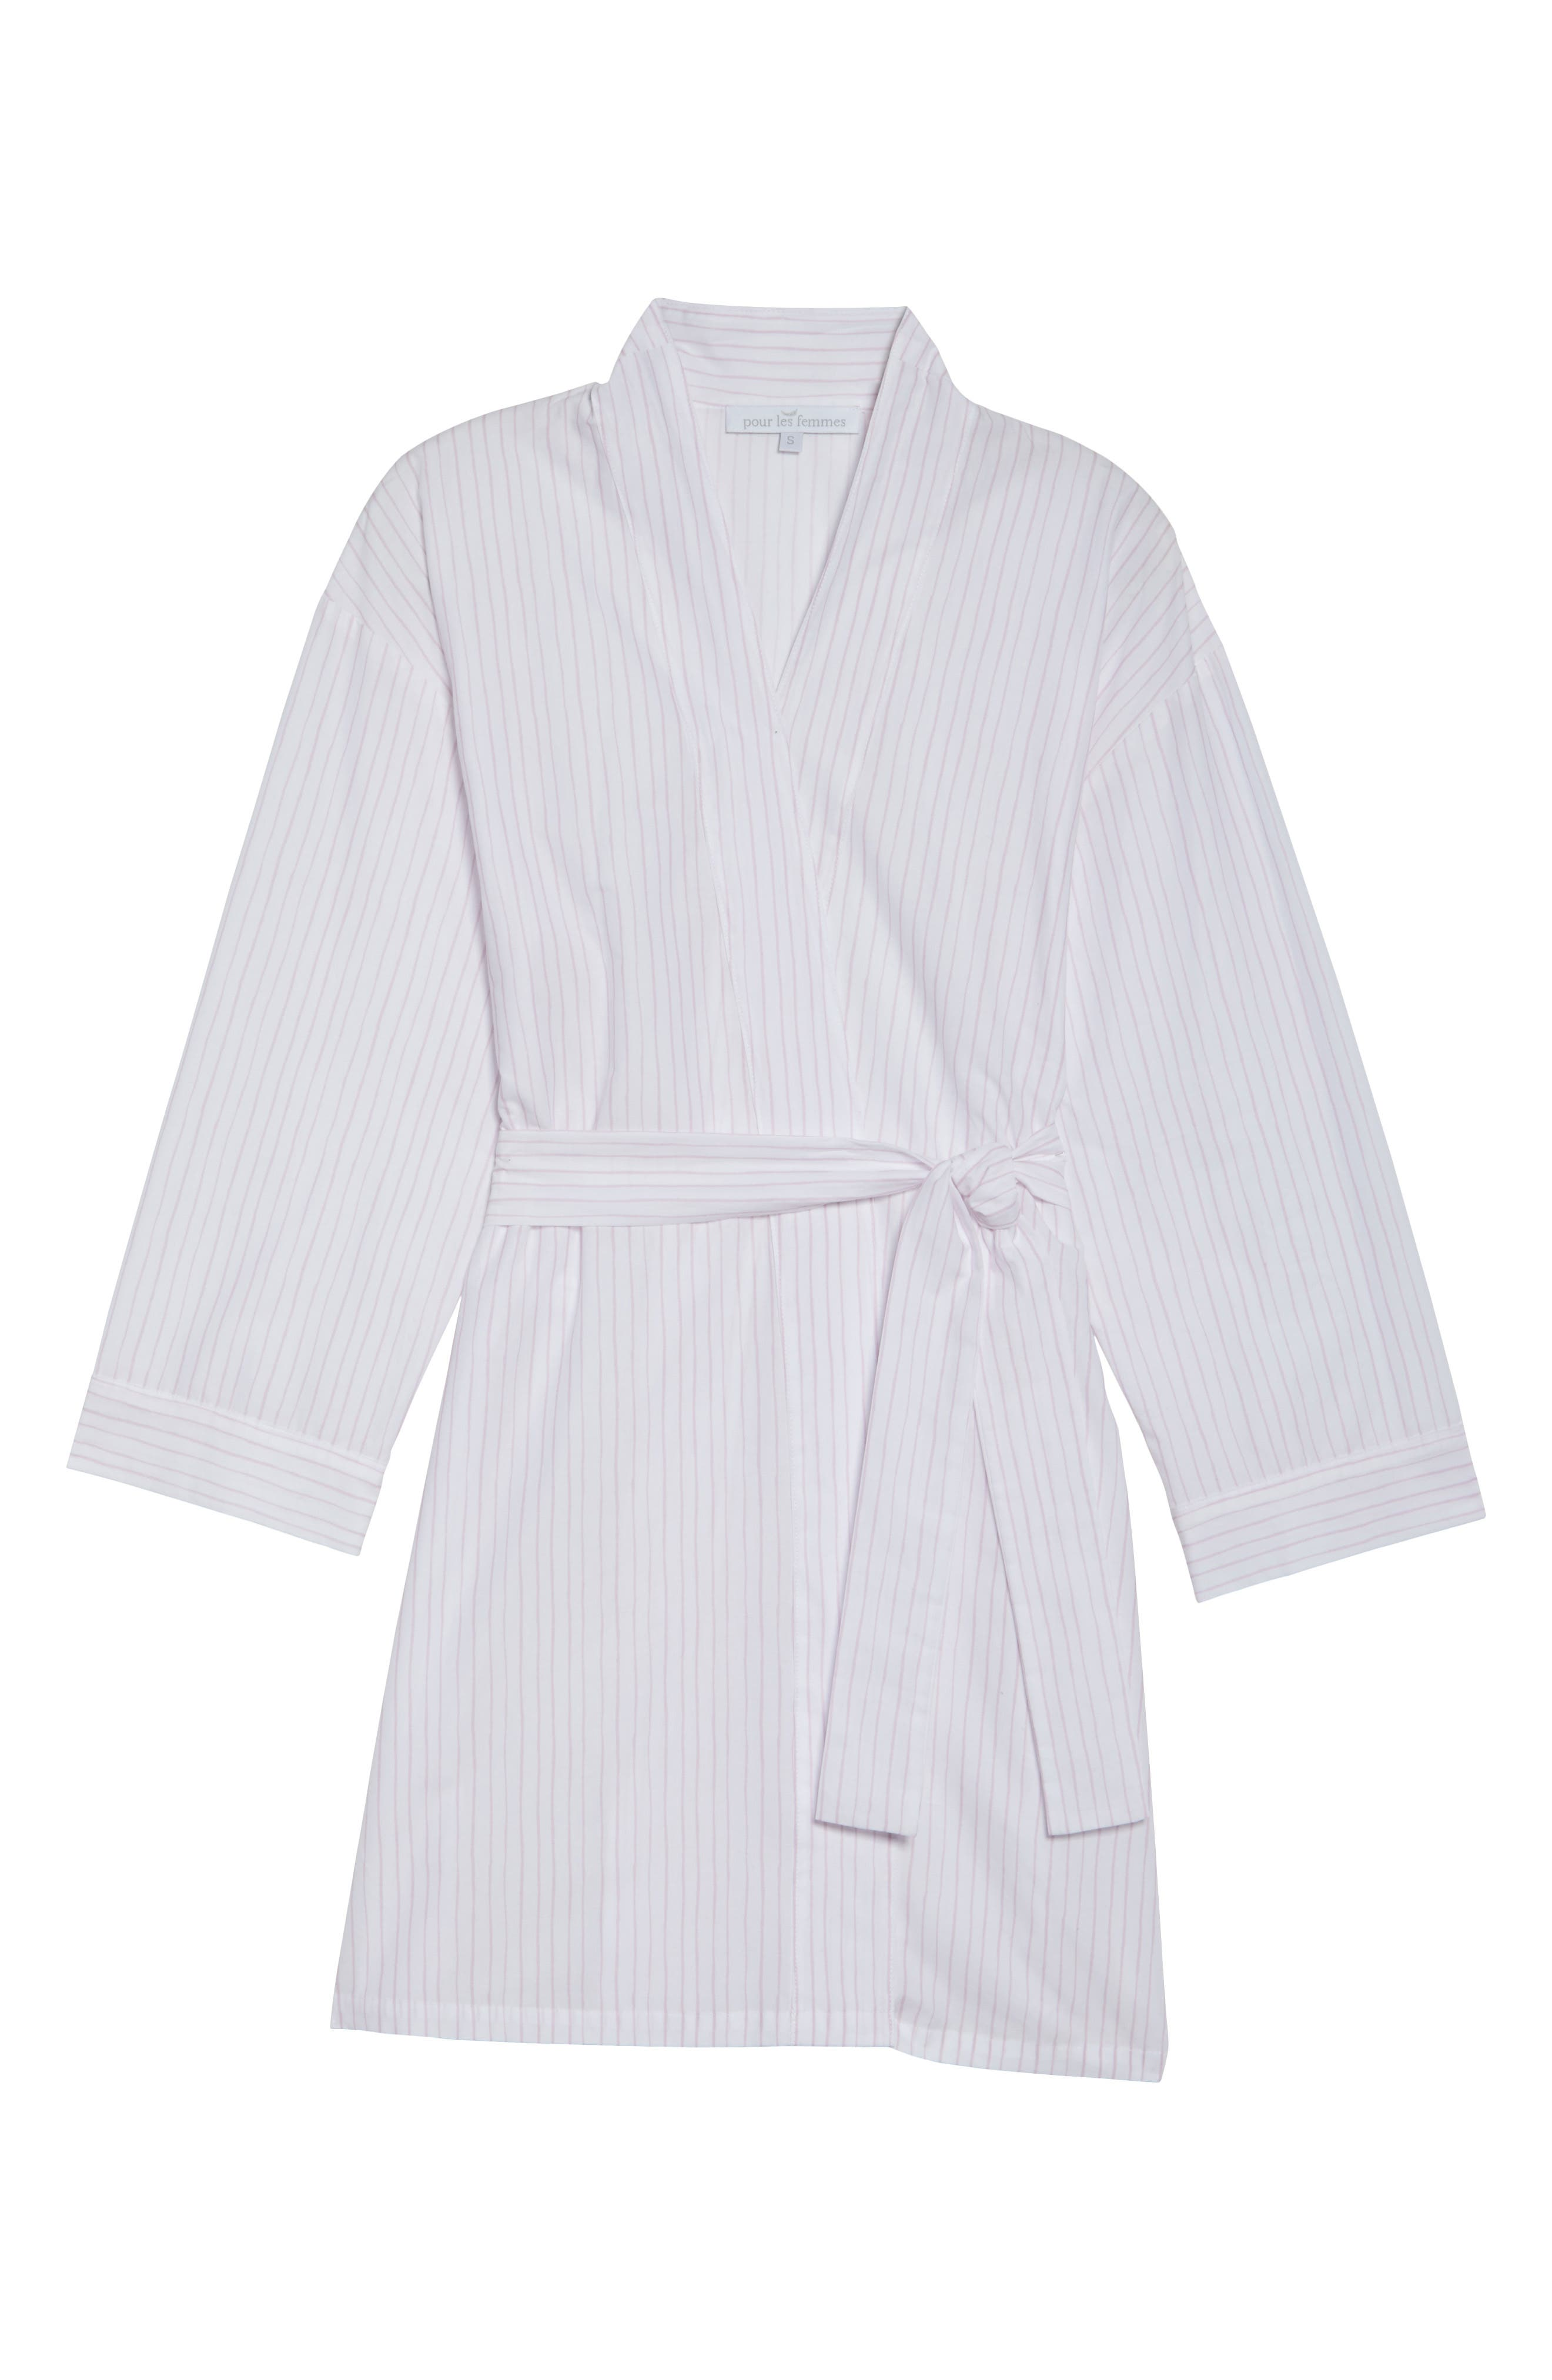 Stripe Robe,                             Alternate thumbnail 6, color,                             950